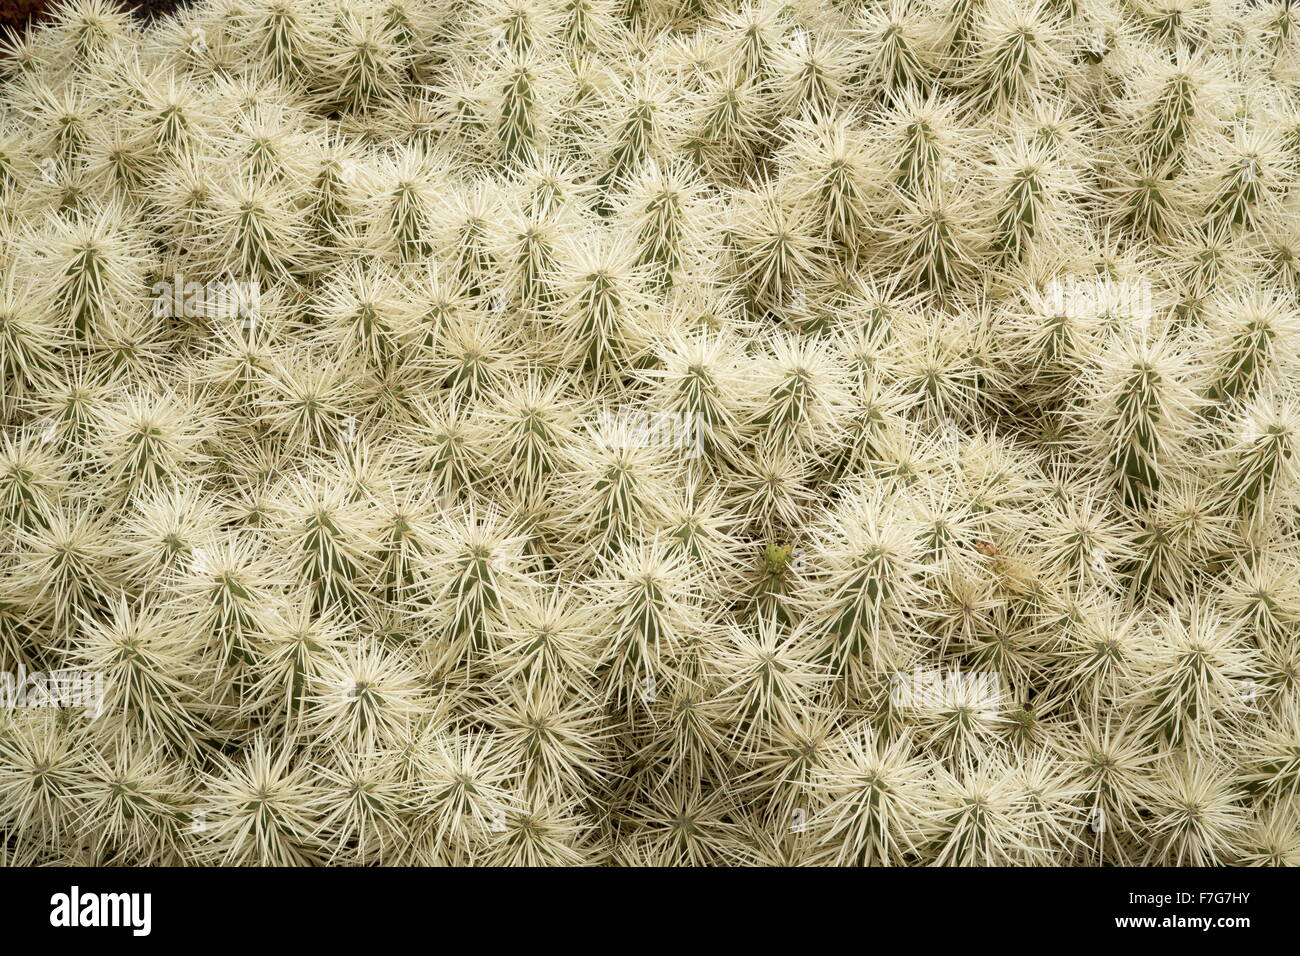 Thistle cholla, Cylindropuntia tunicata, from Mexico region. Stock Photo